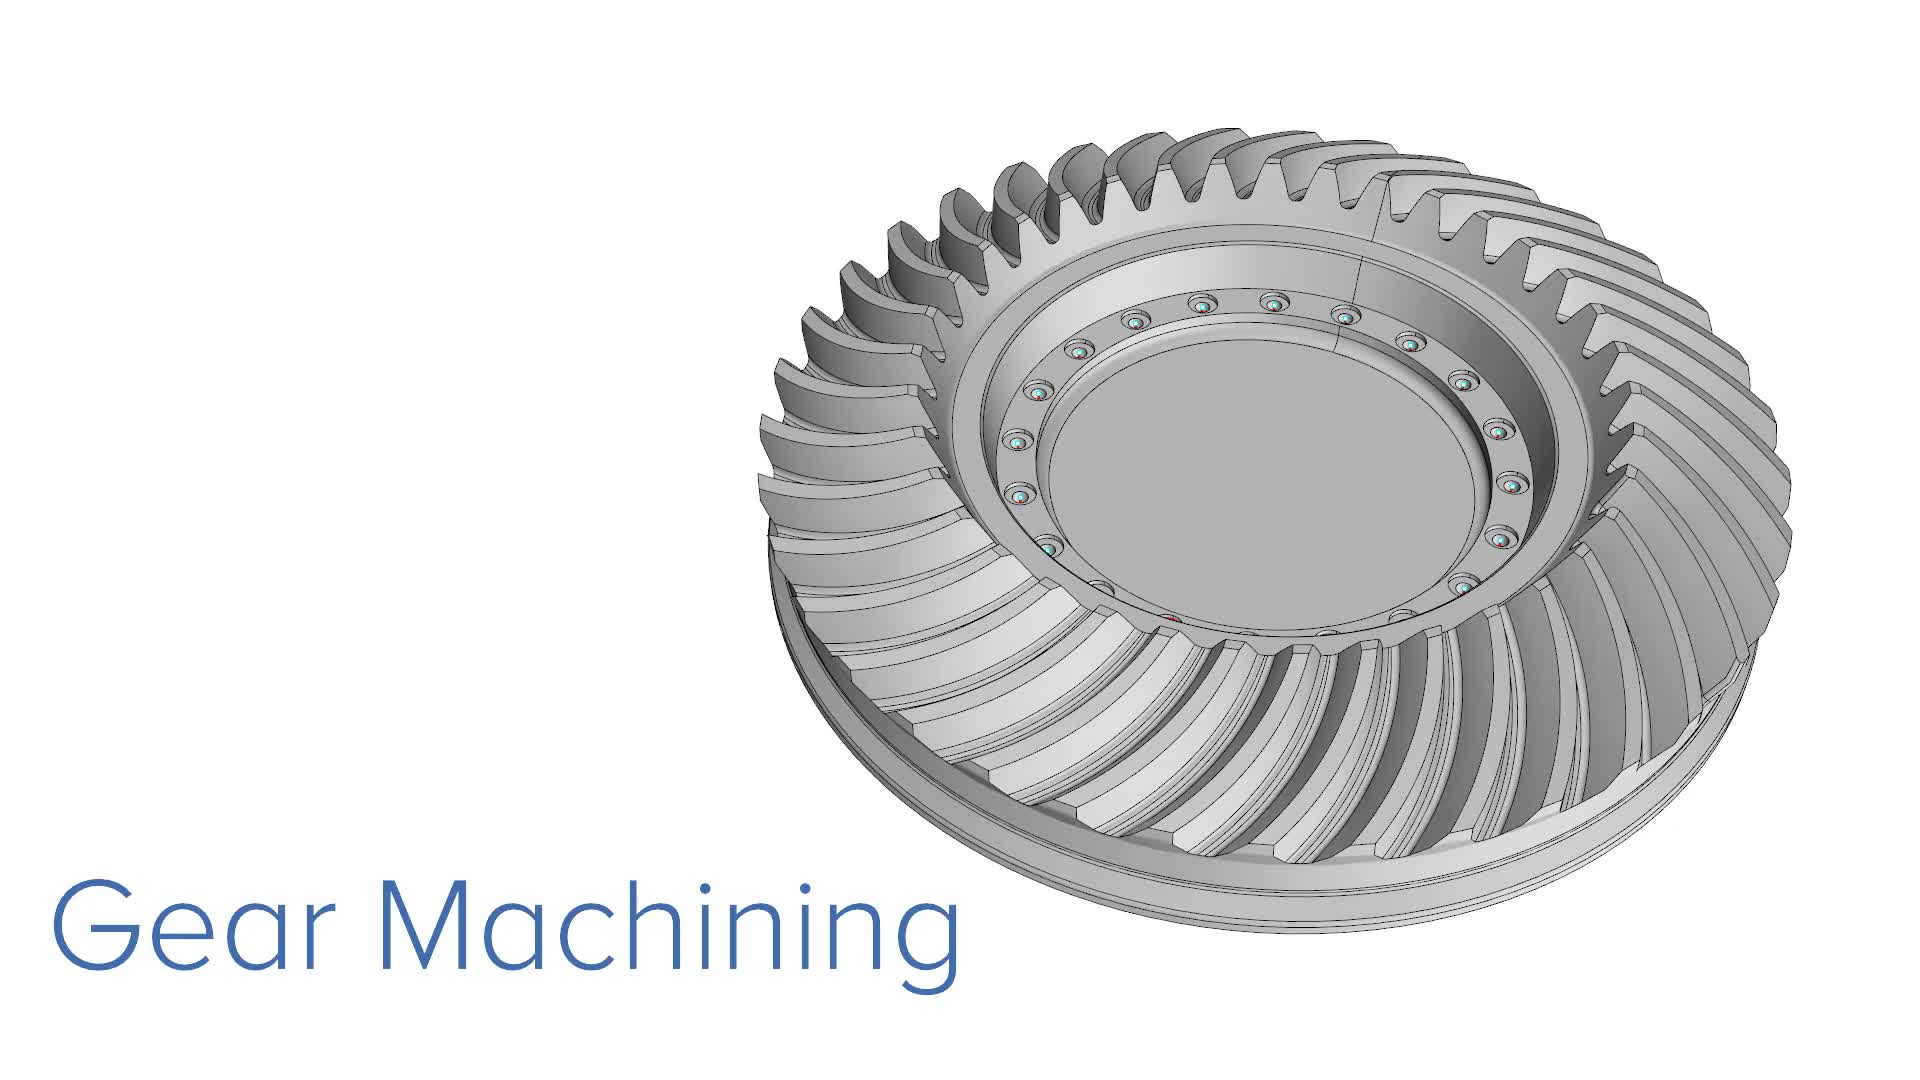 Gear Machining